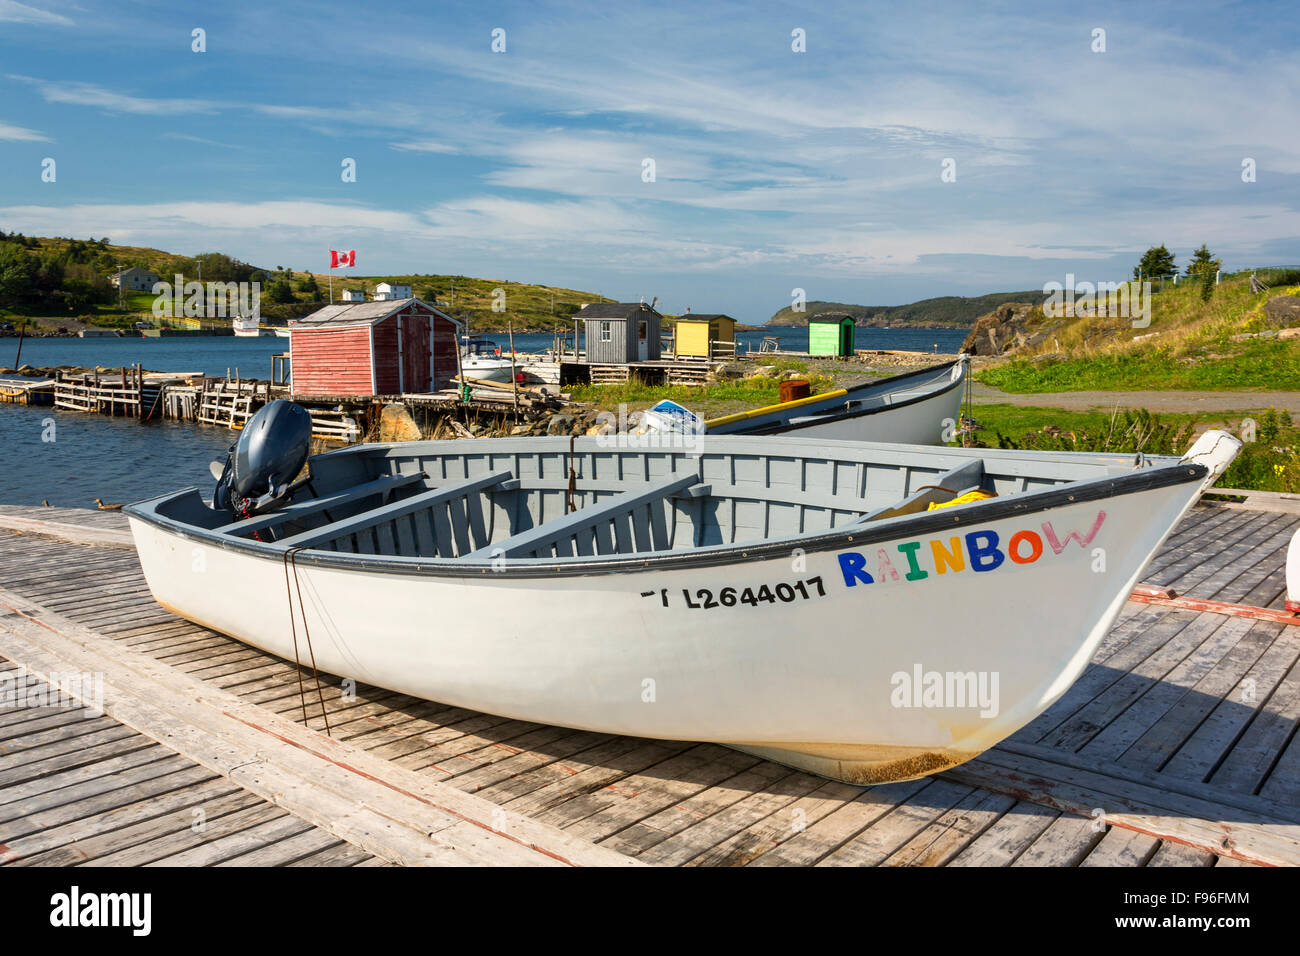 Wooden boats, Hant's Harbour, Newfoundland, Canada - Stock Image